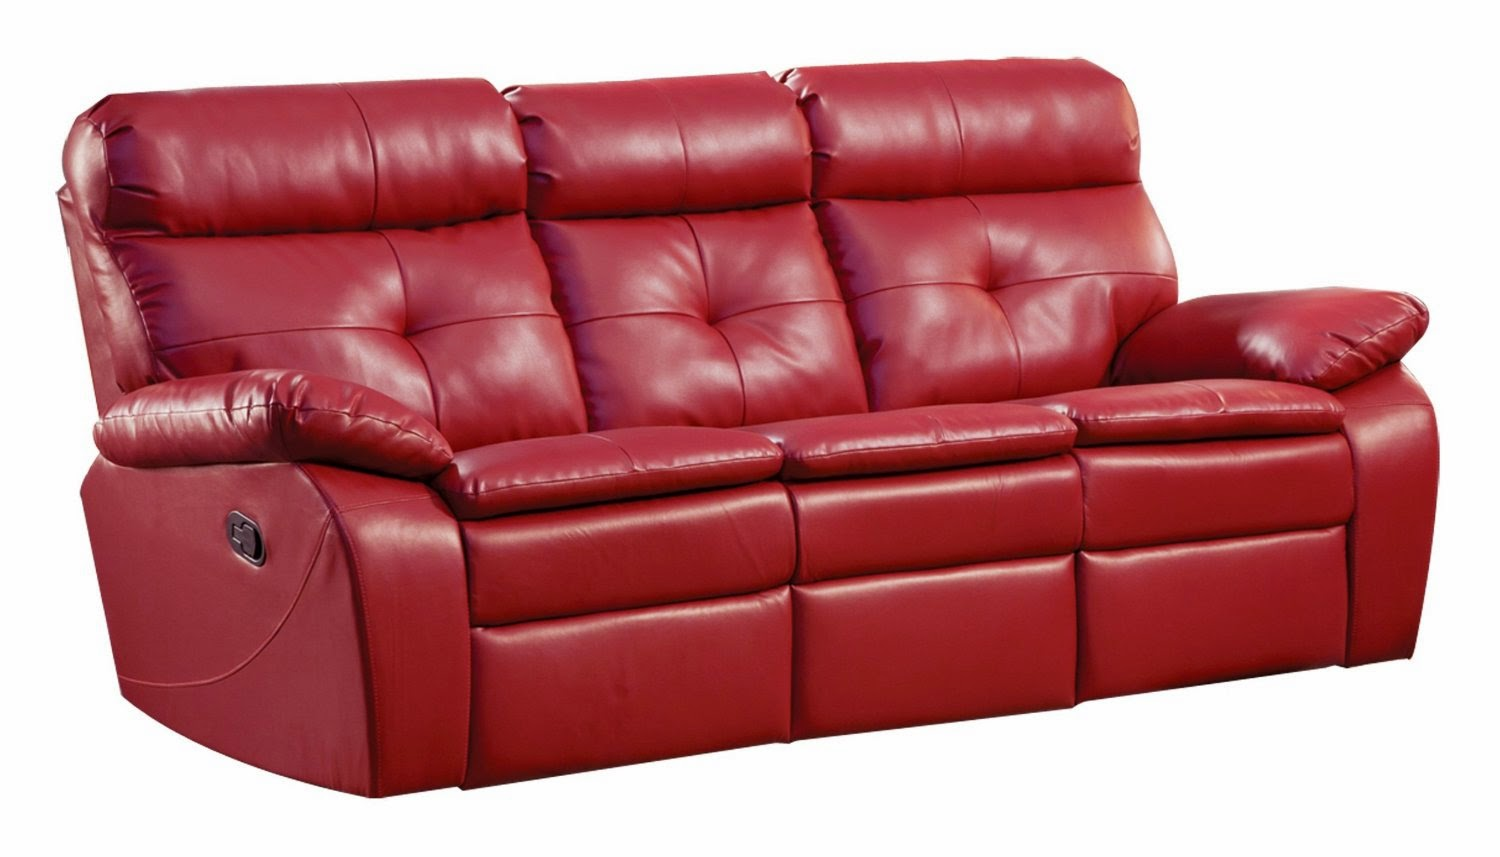 Leather Recliner Sectional Sofa Decorative Pillows Sofas Top Seller Reclining And Loveseat Red